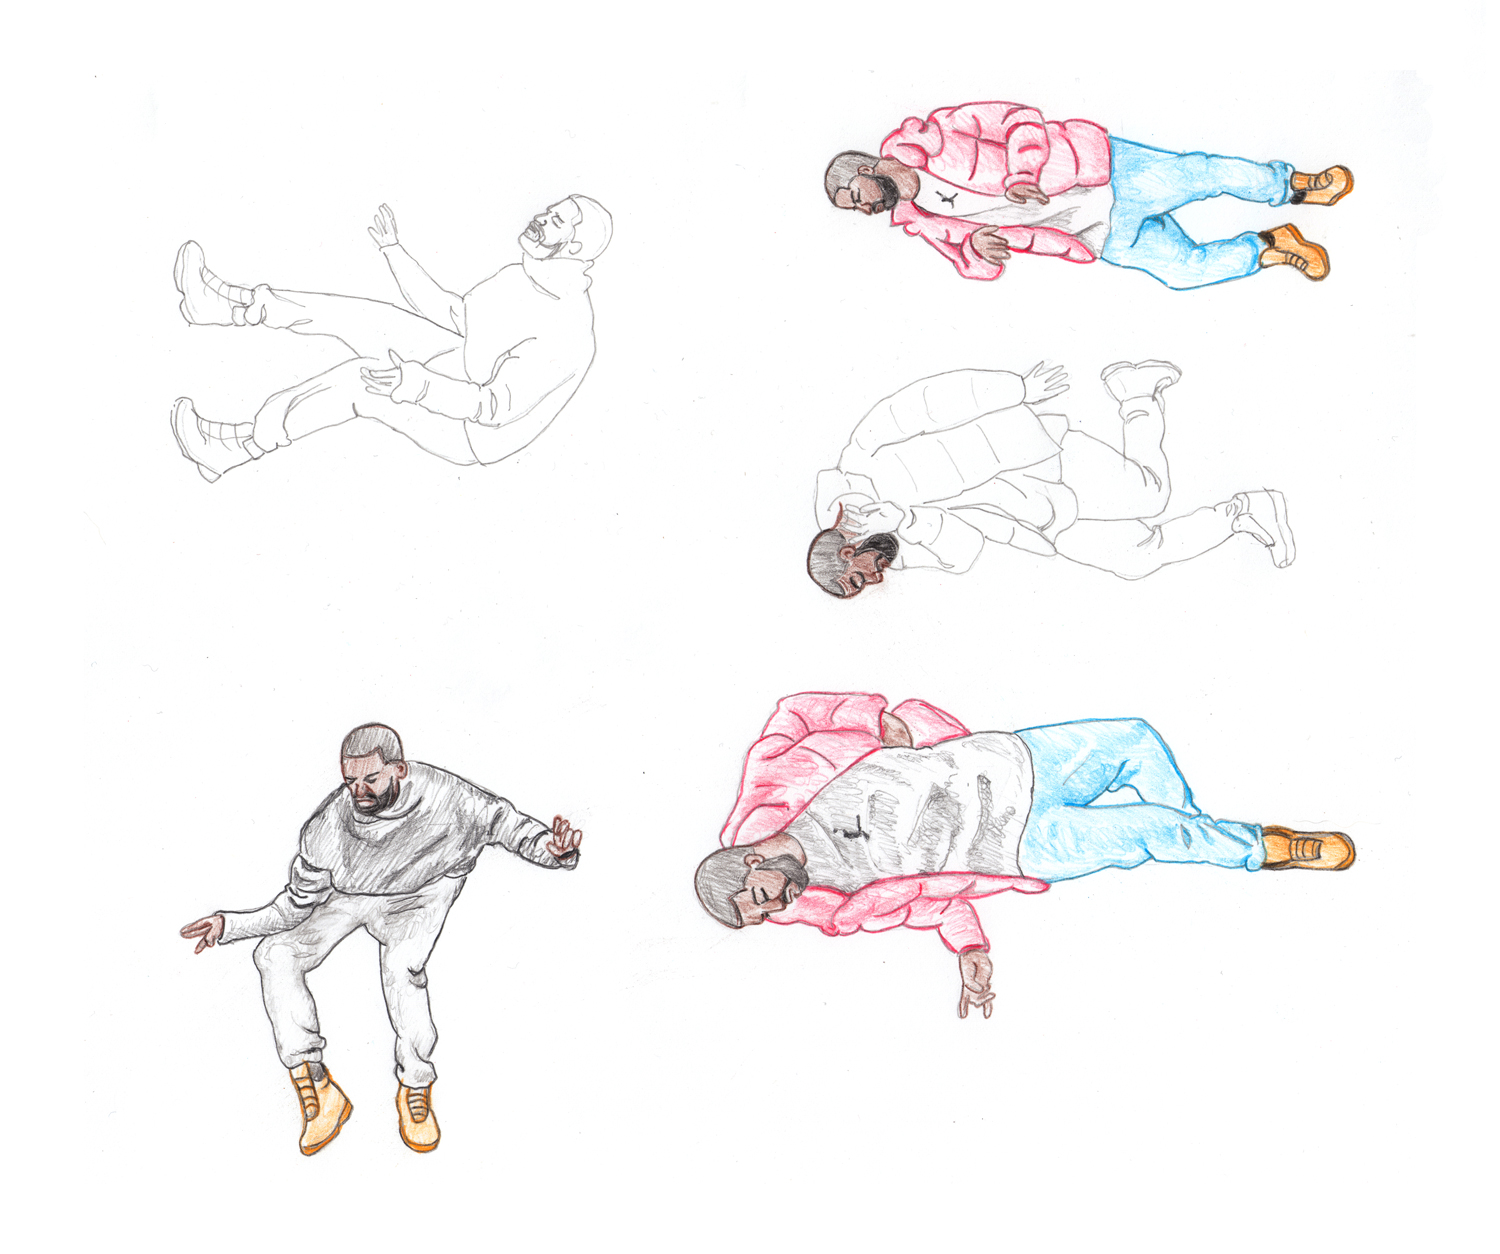 HotlineBling_Sketch-01.jpg